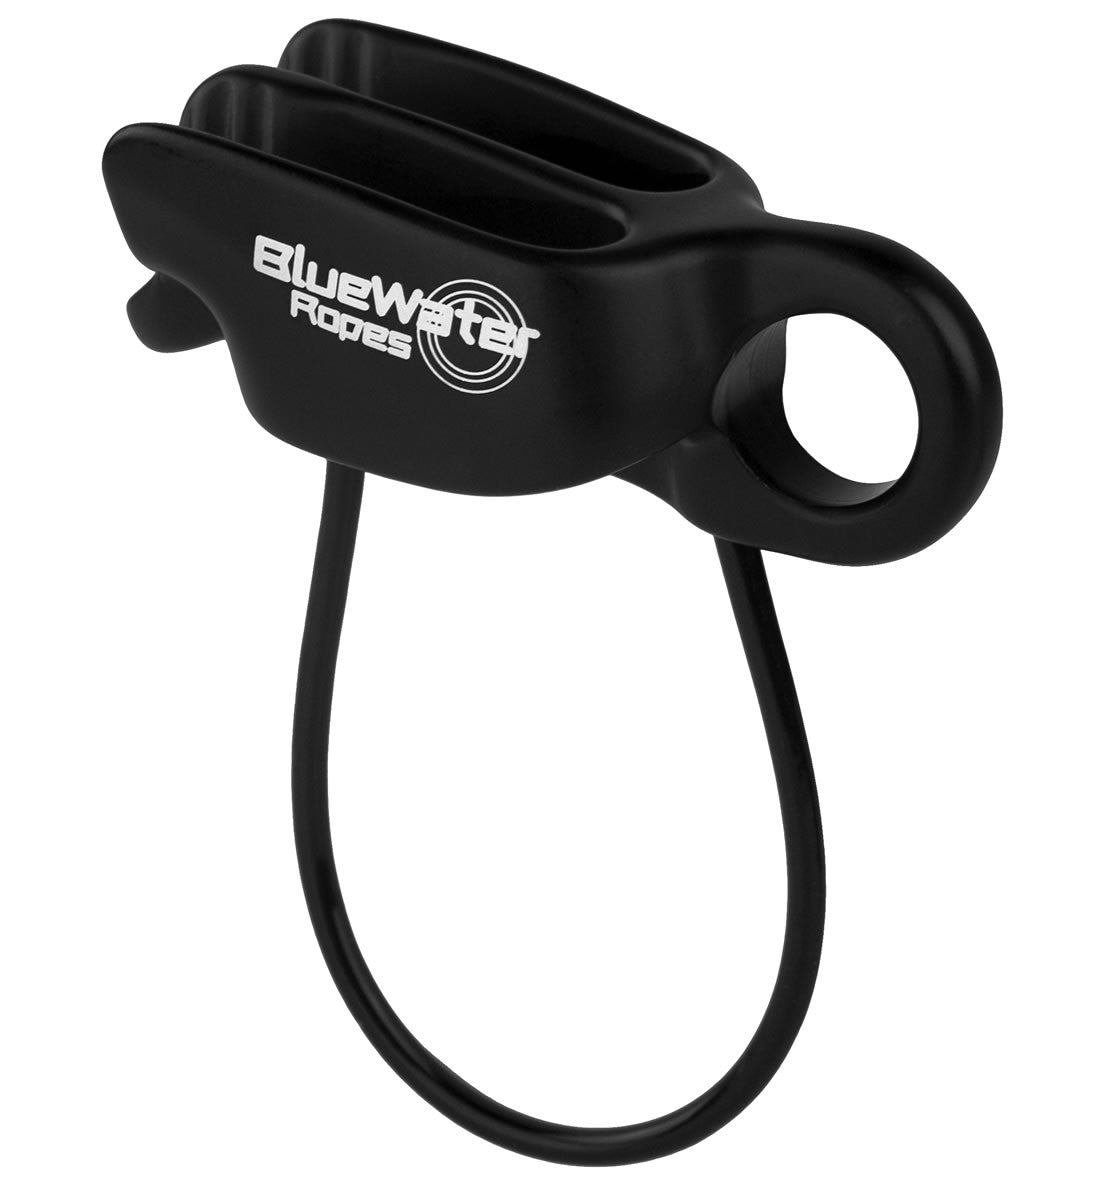 BLUEWATER Ranger Belay Device